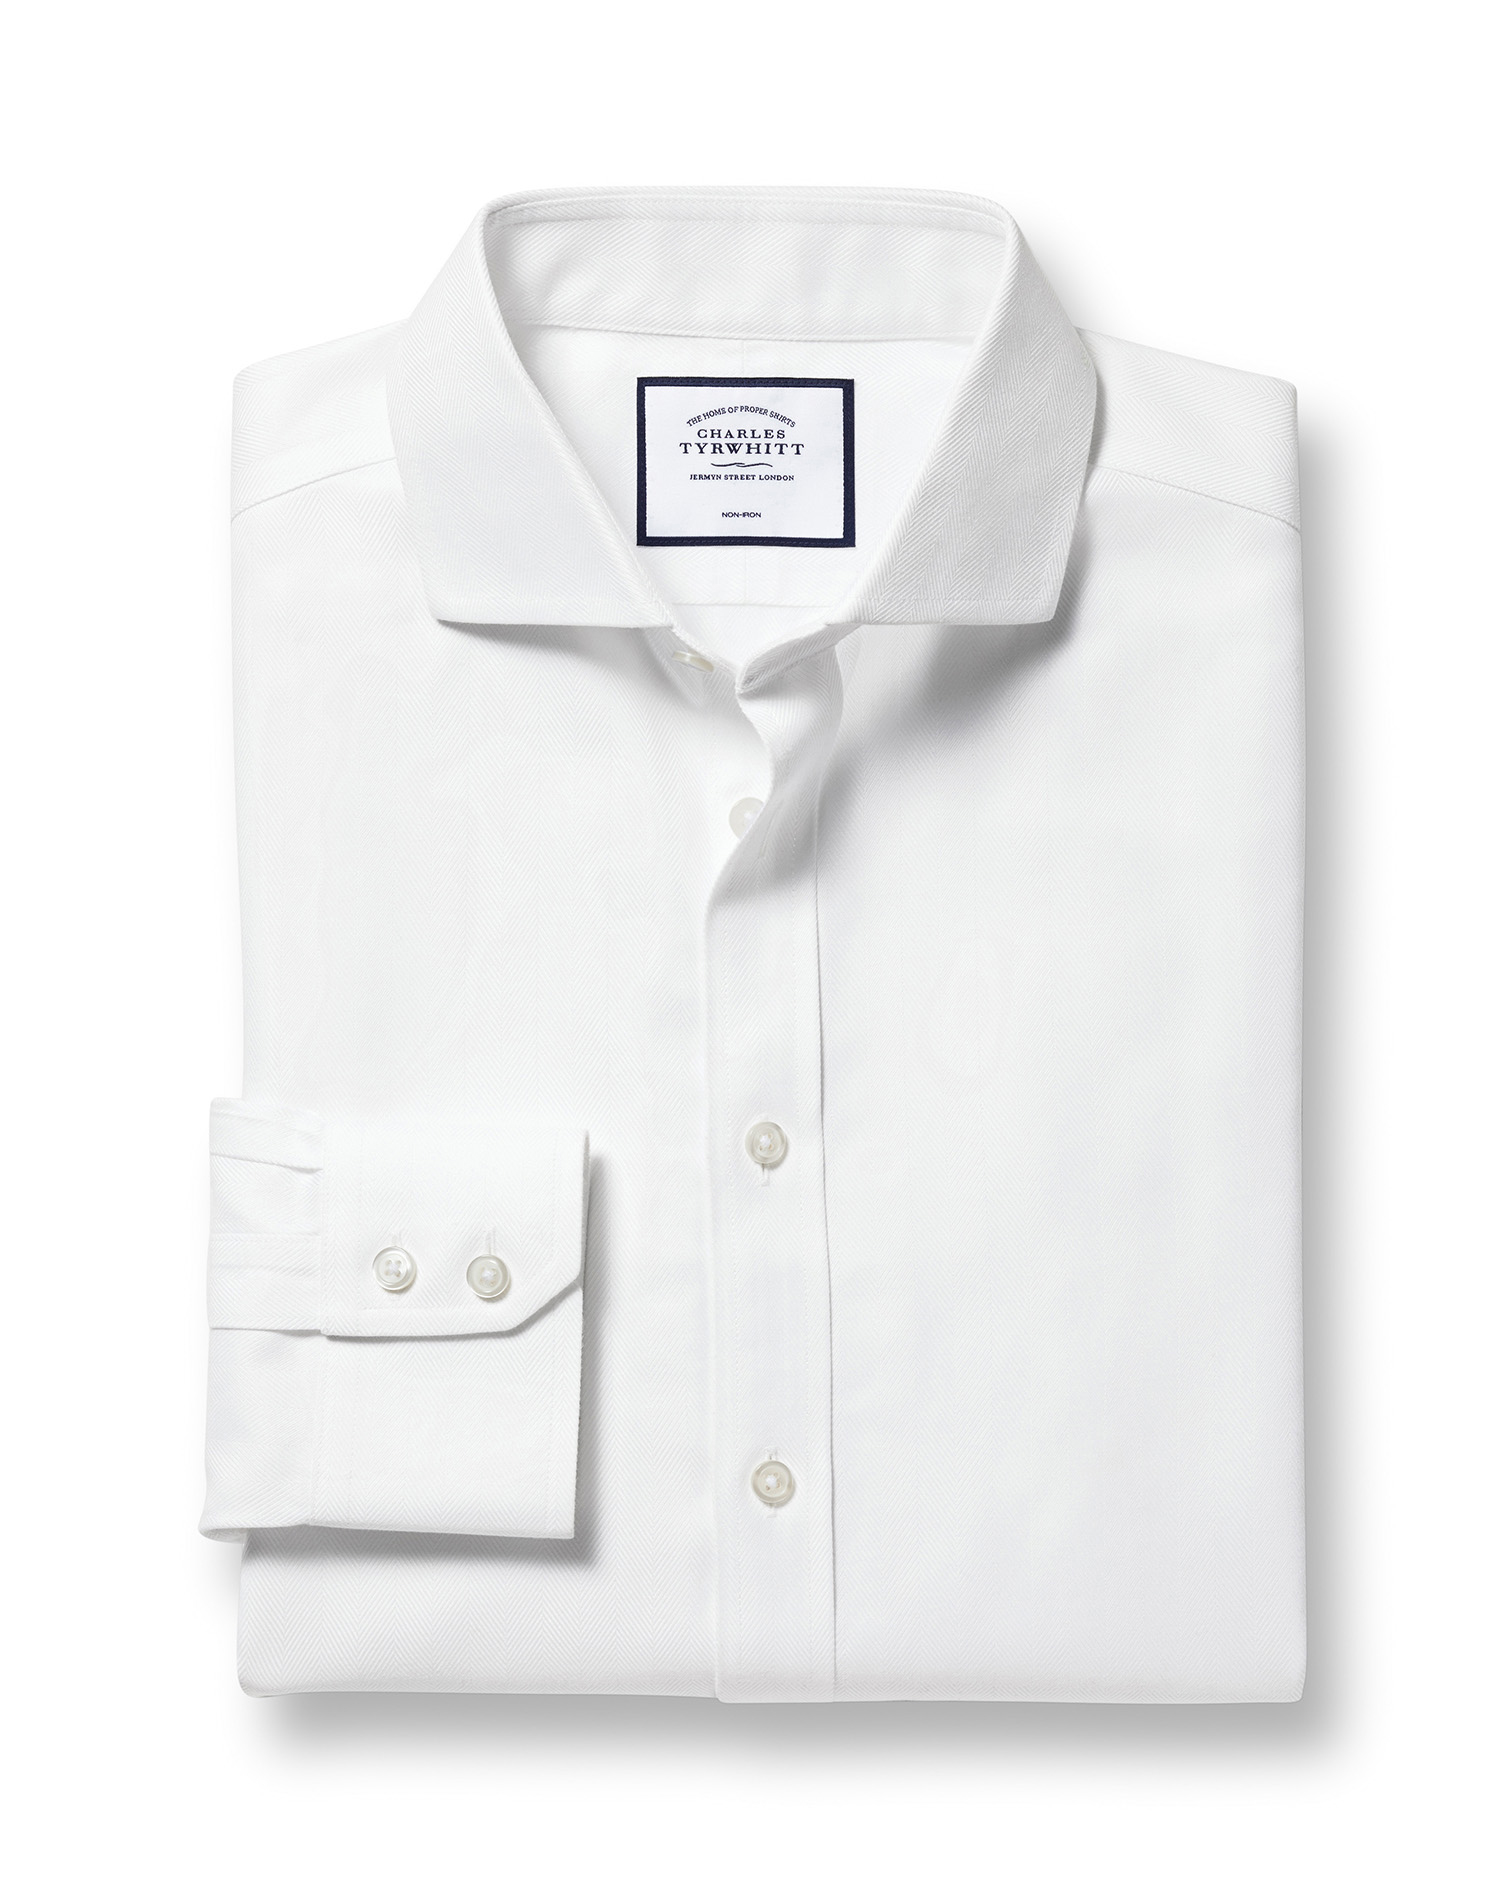 Slim Fit Cutaway Non-Iron Herringbone White Cotton Formal Shirt Double Cuff Size 18/37 by Charles Ty